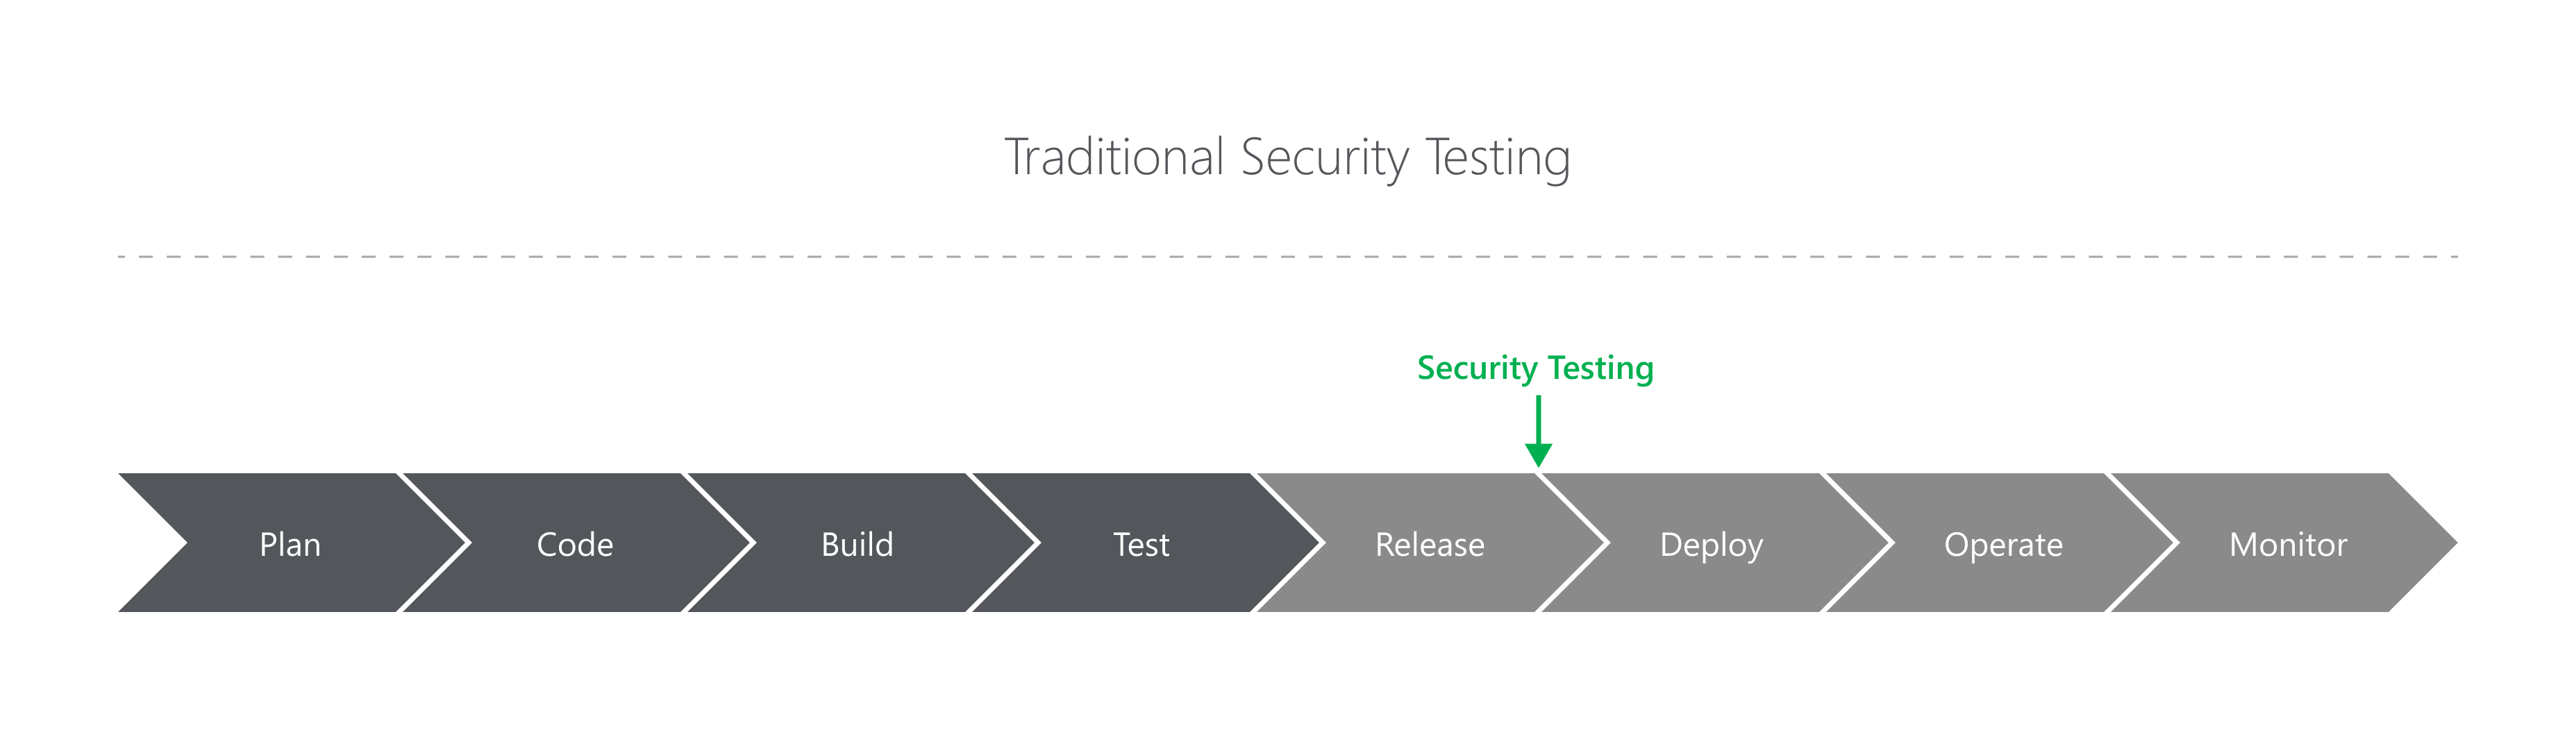 Traditional Security Testing